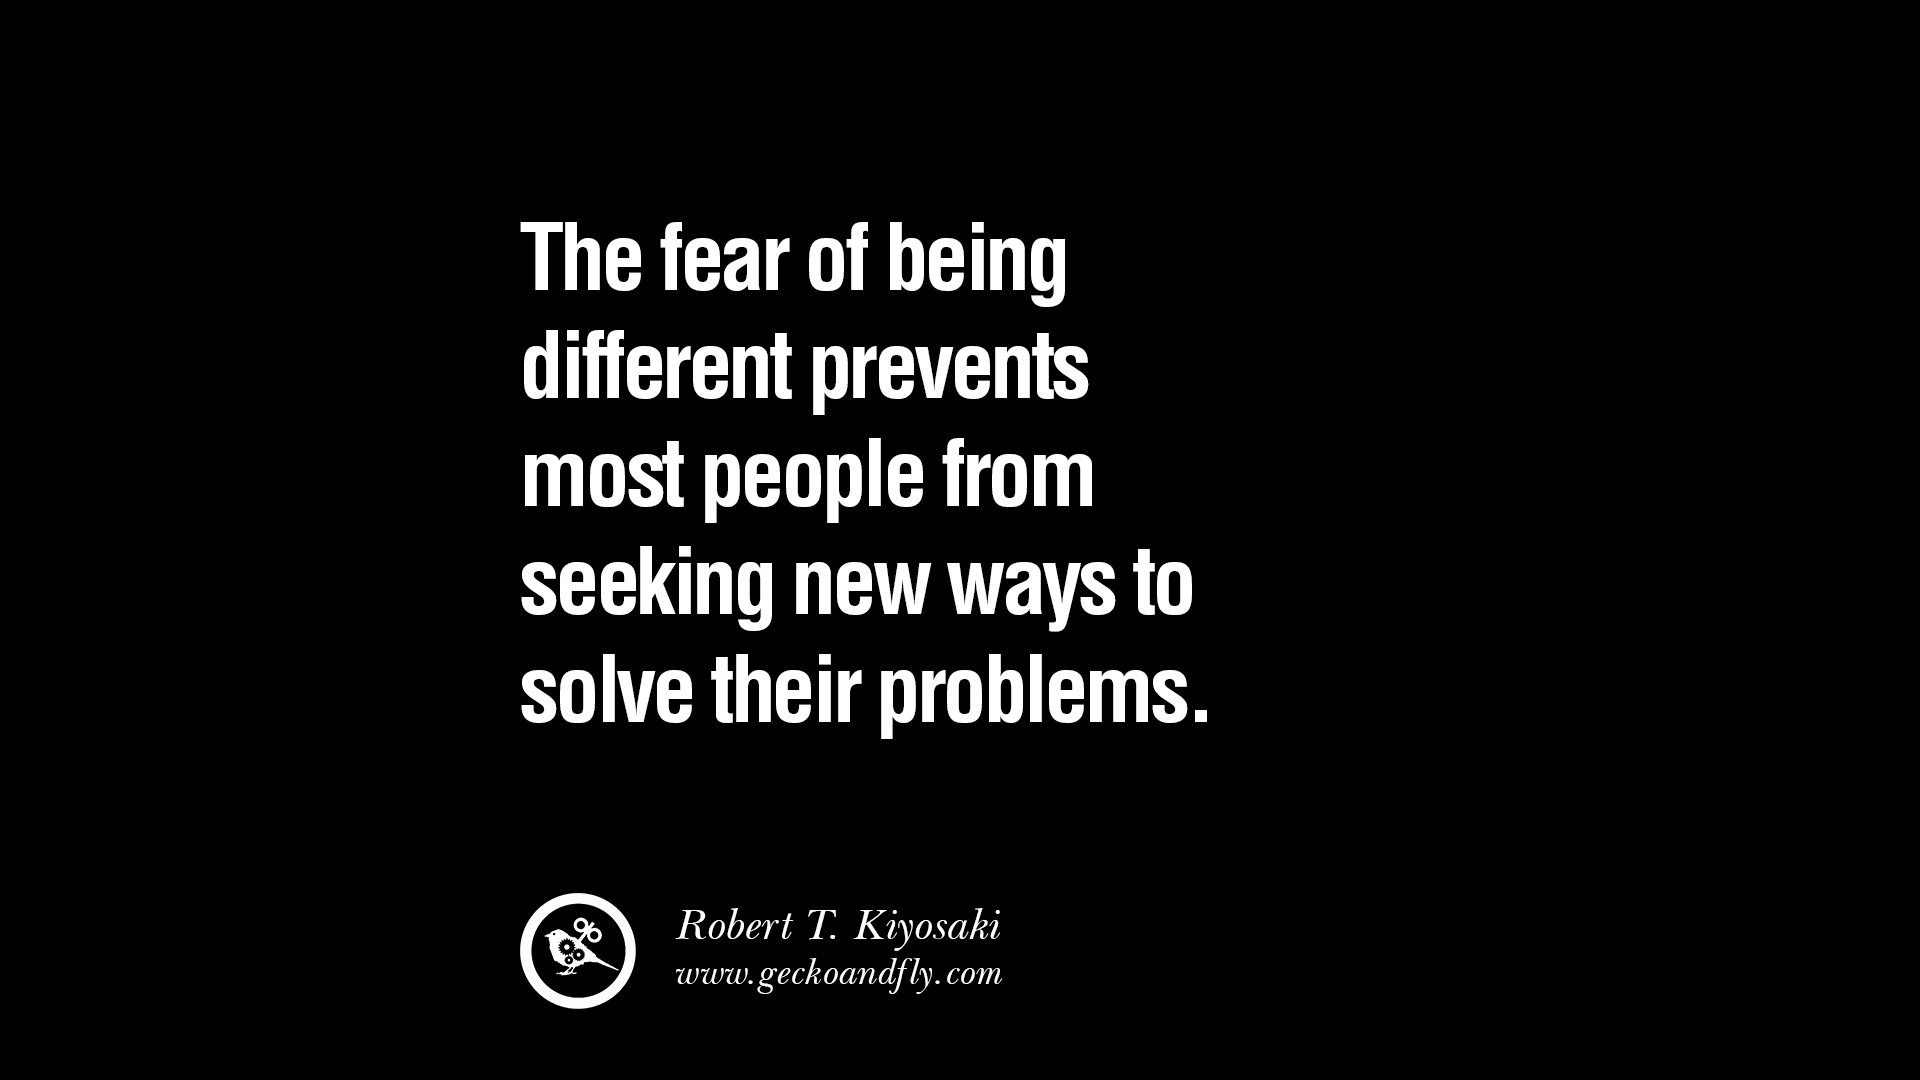 The fear of being different prevents most people from seeking new ways to solve their problems.